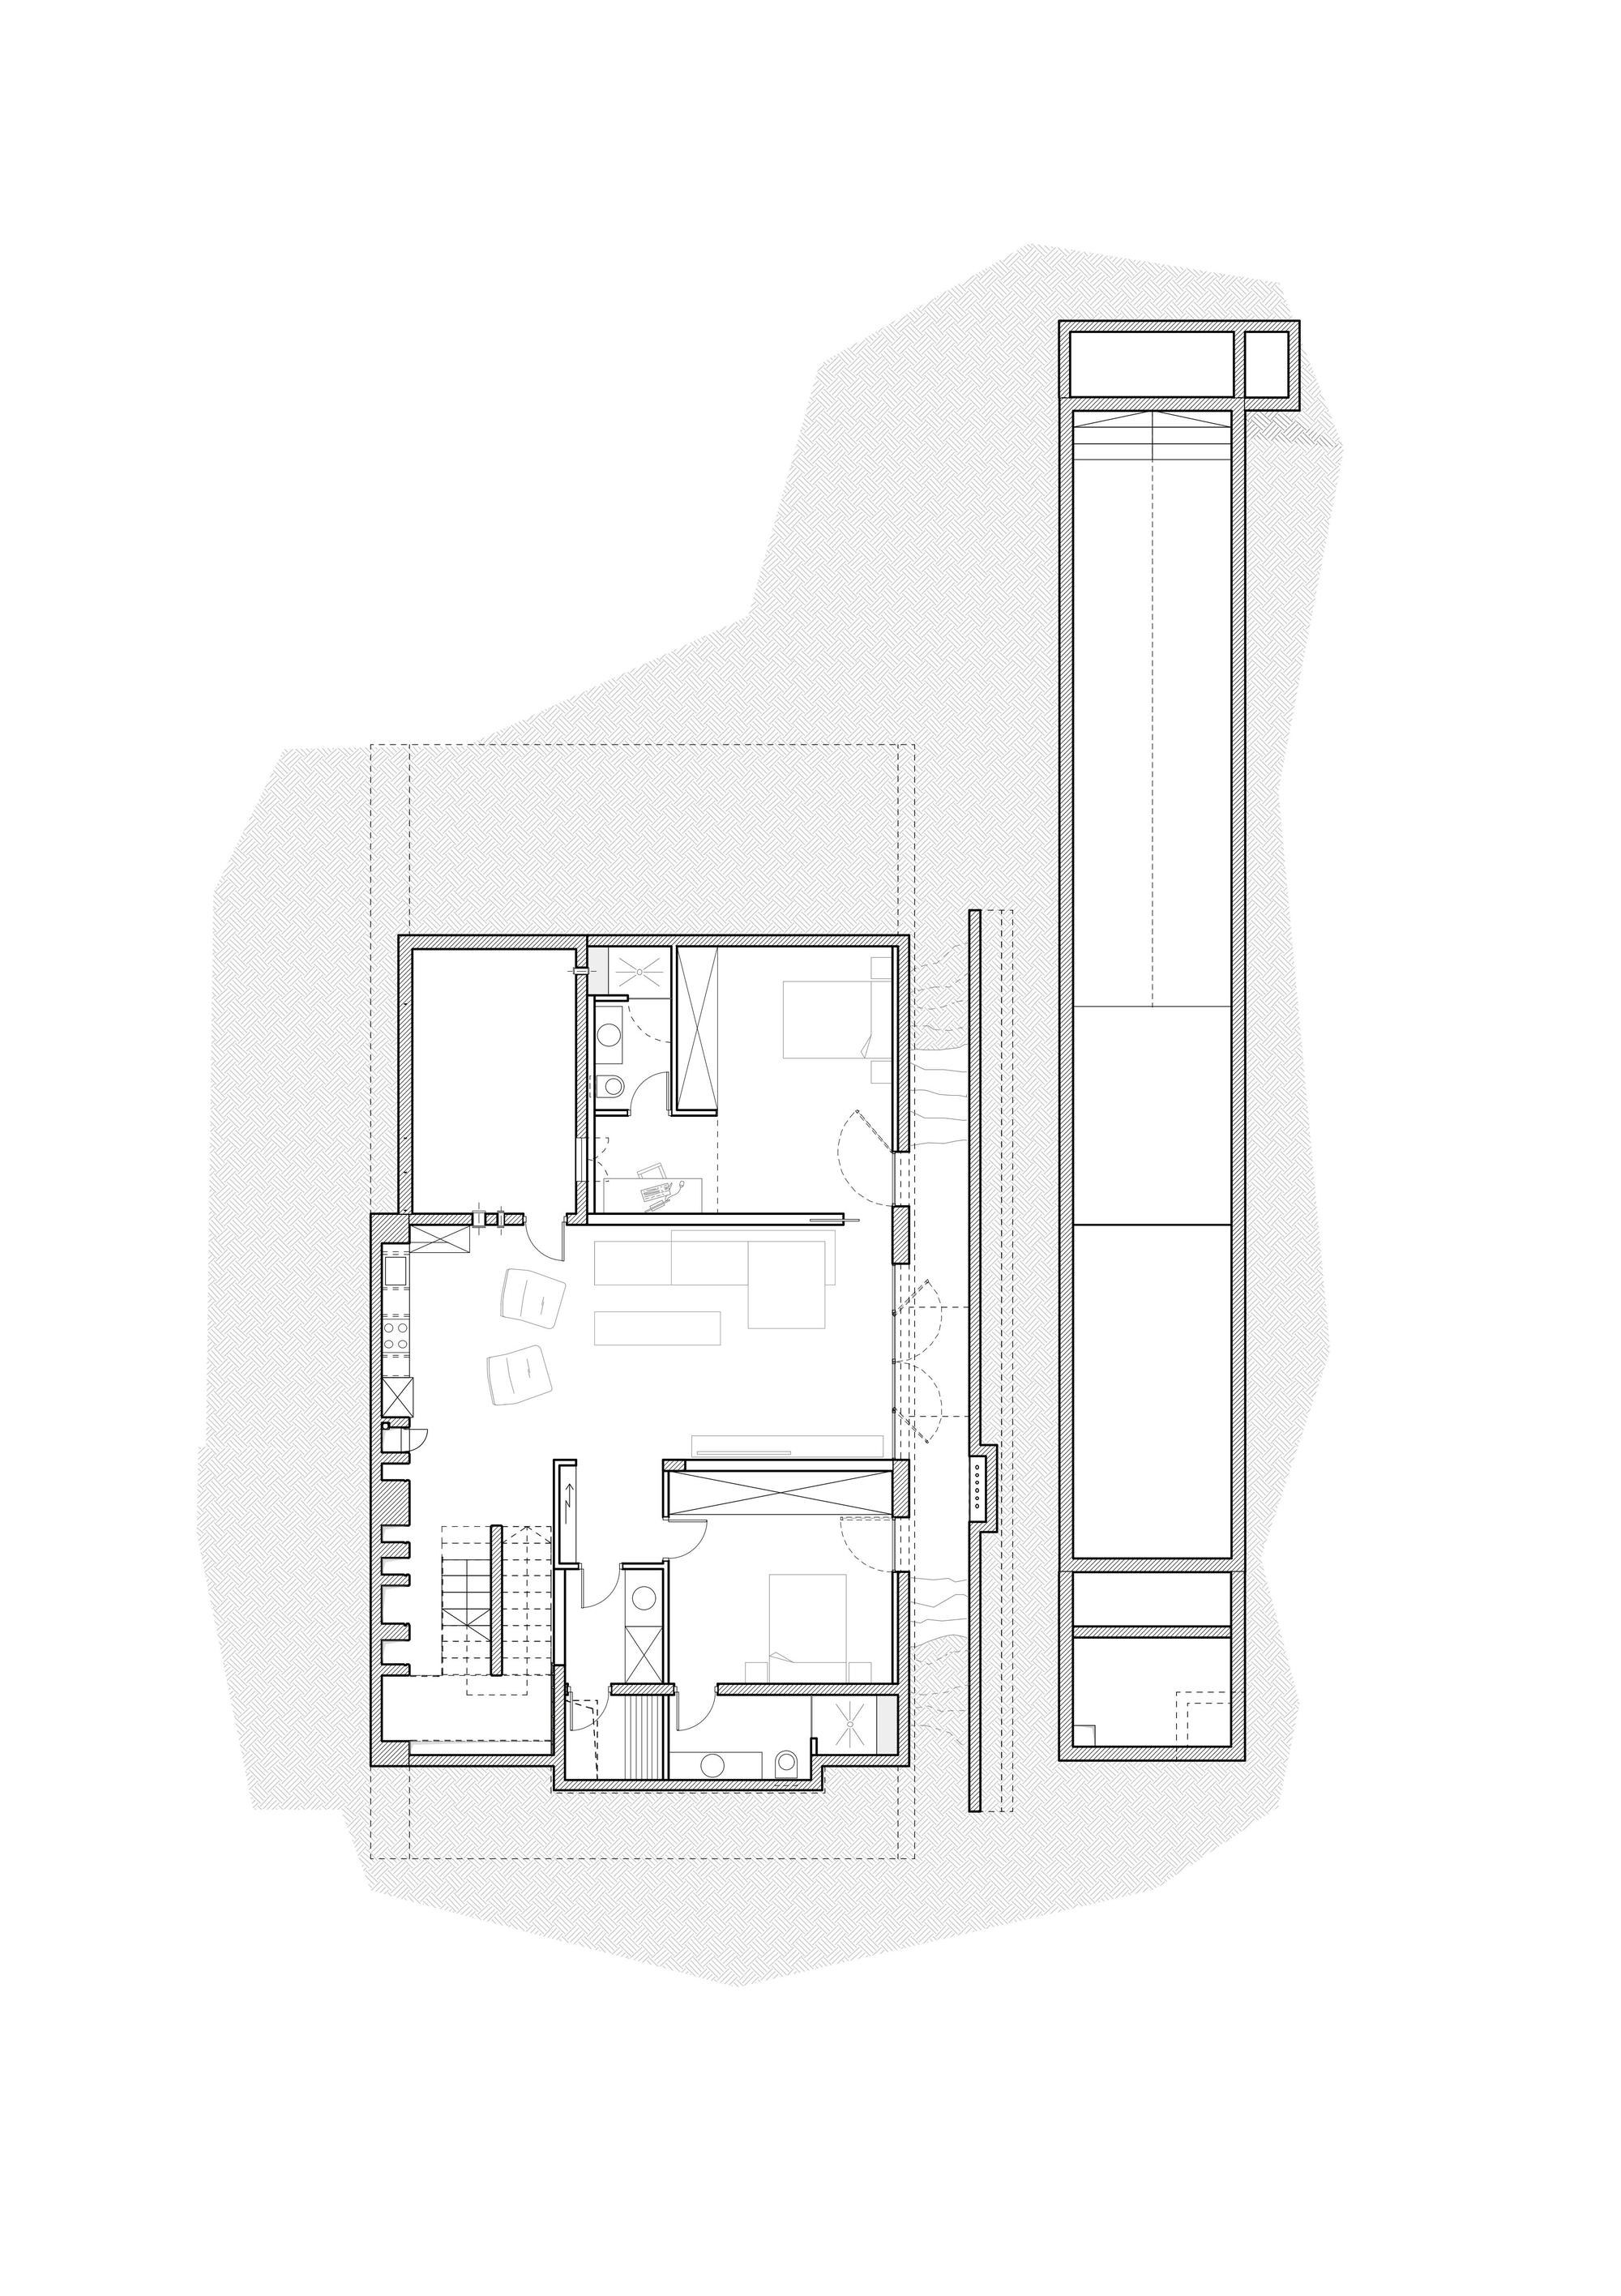 Muse(um) House by Anderman Architects